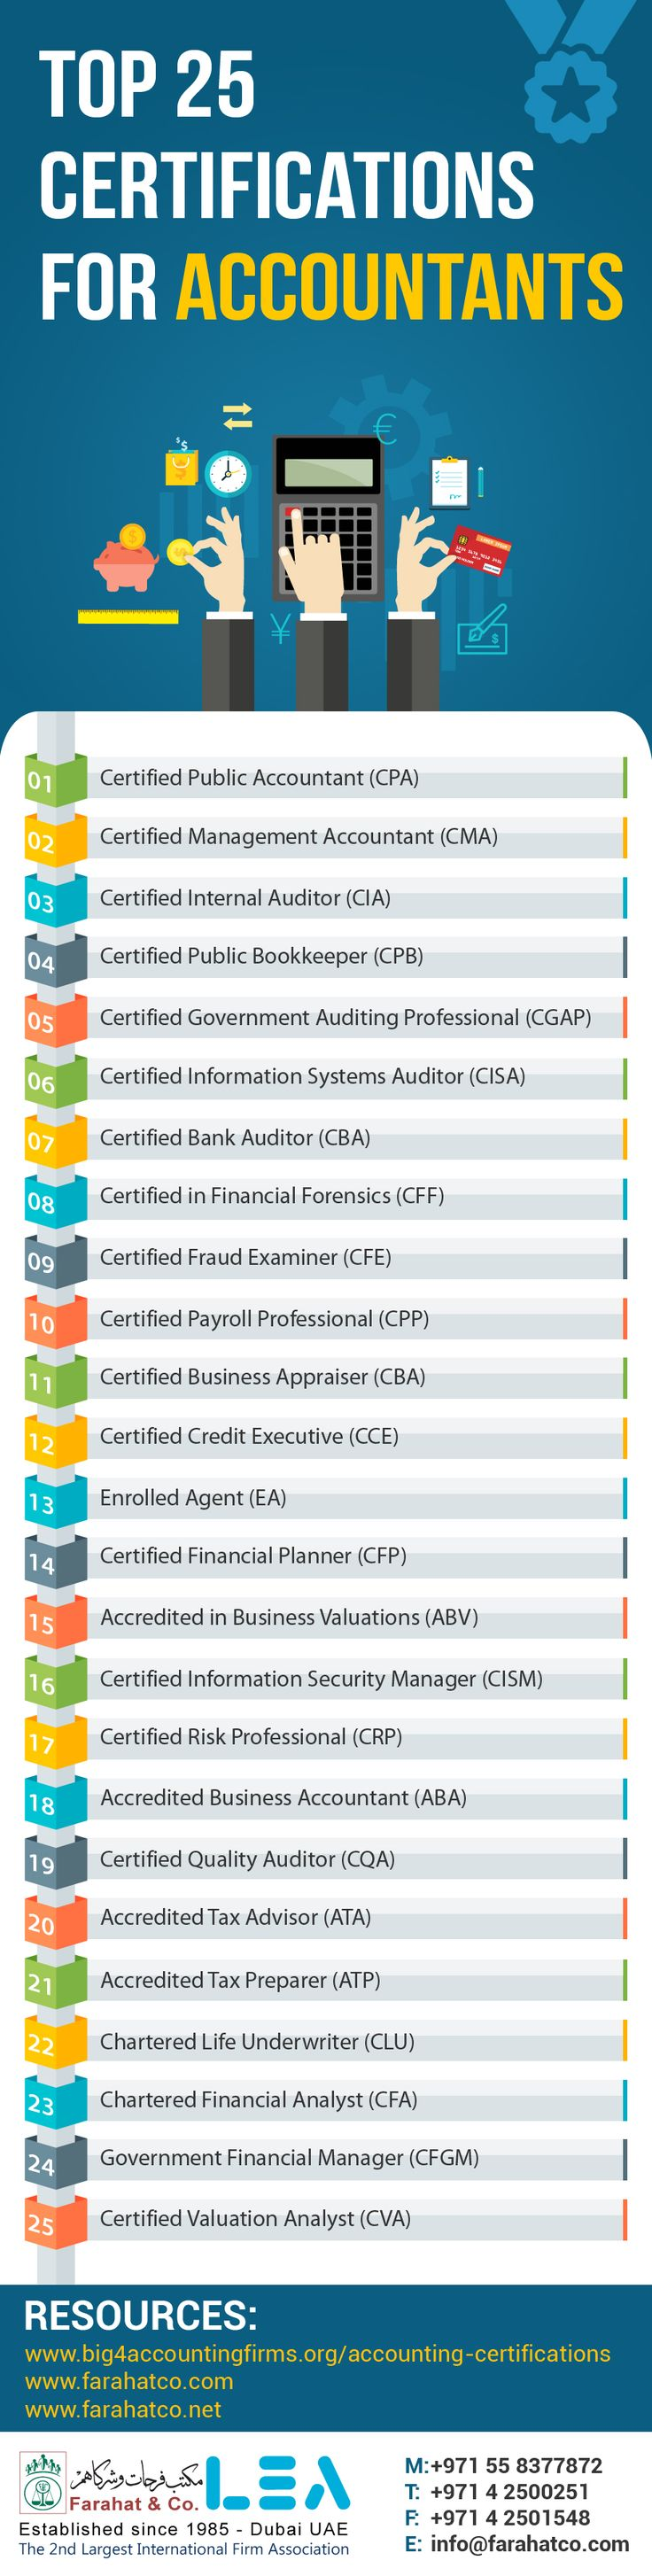 14 best infographics images on pinterest visual schedules top 25 certifications for accountants xflitez Gallery